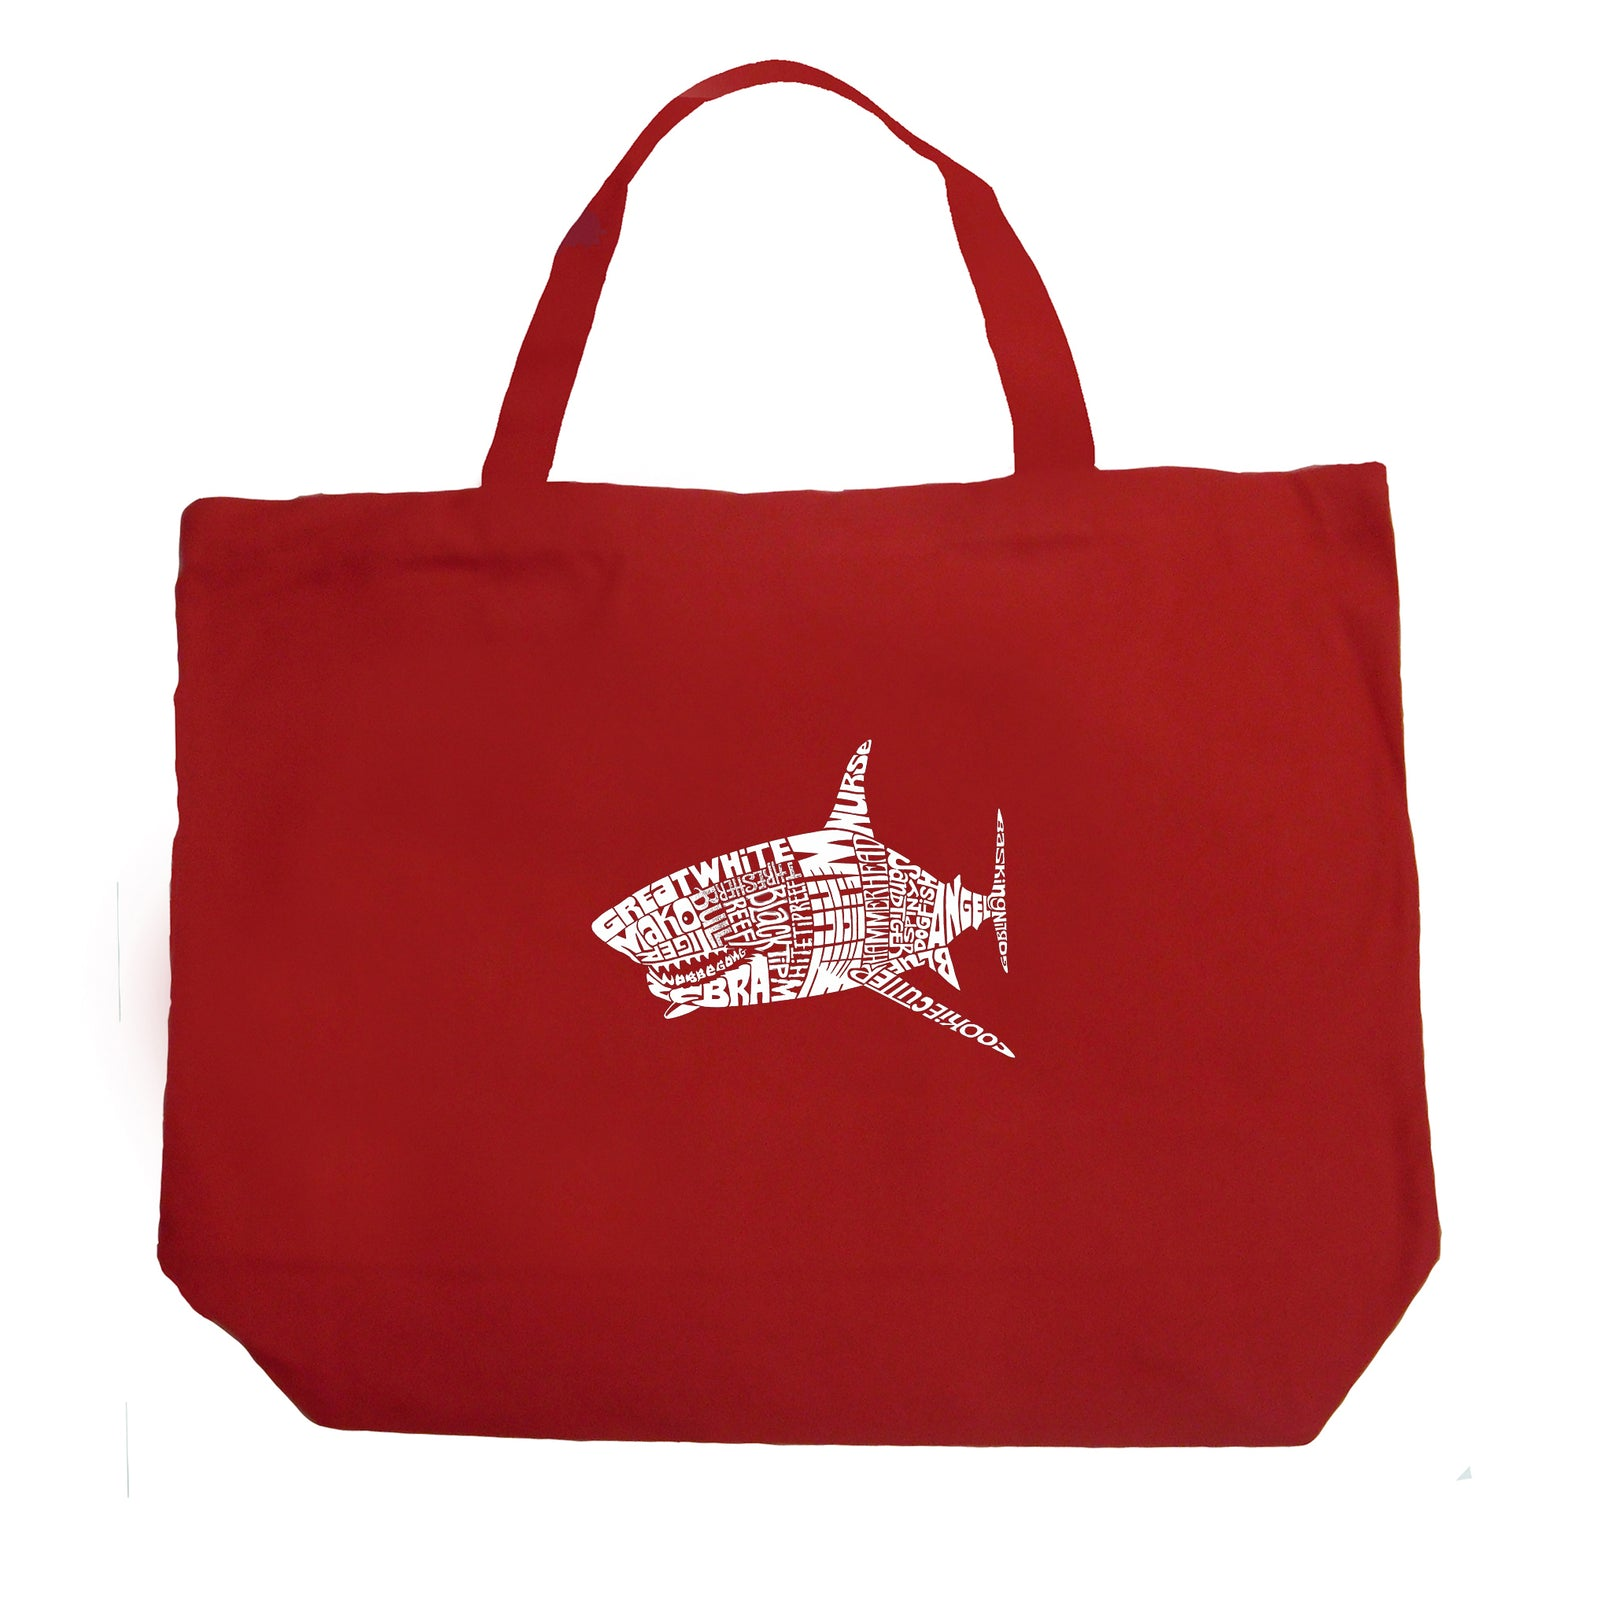 Large Tote Bag - SPECIES OF SHARK